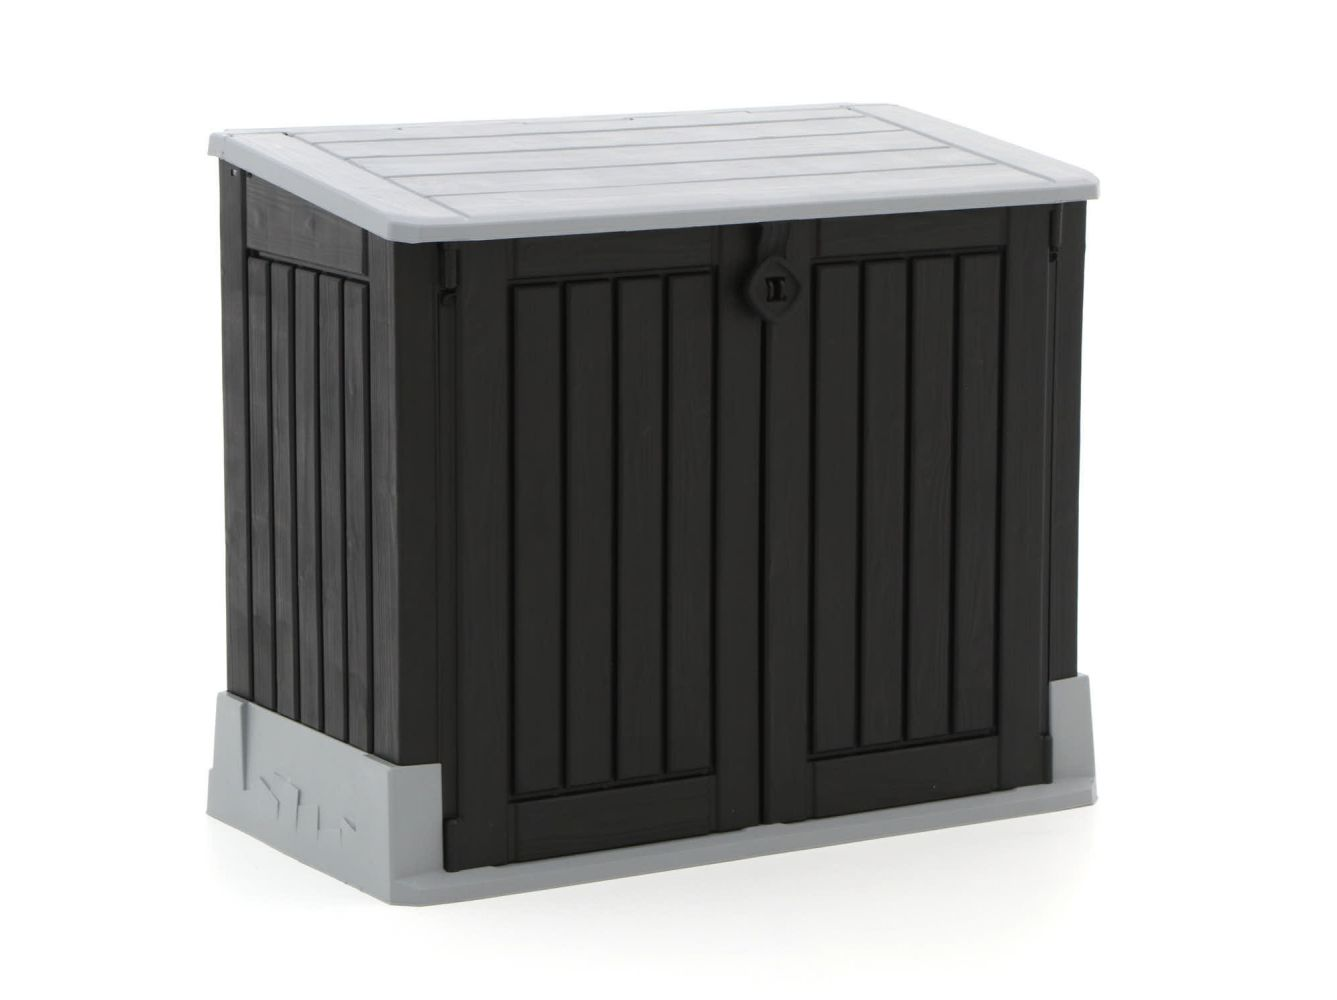 Keter Store-It-out Midi opbergbox 132cm